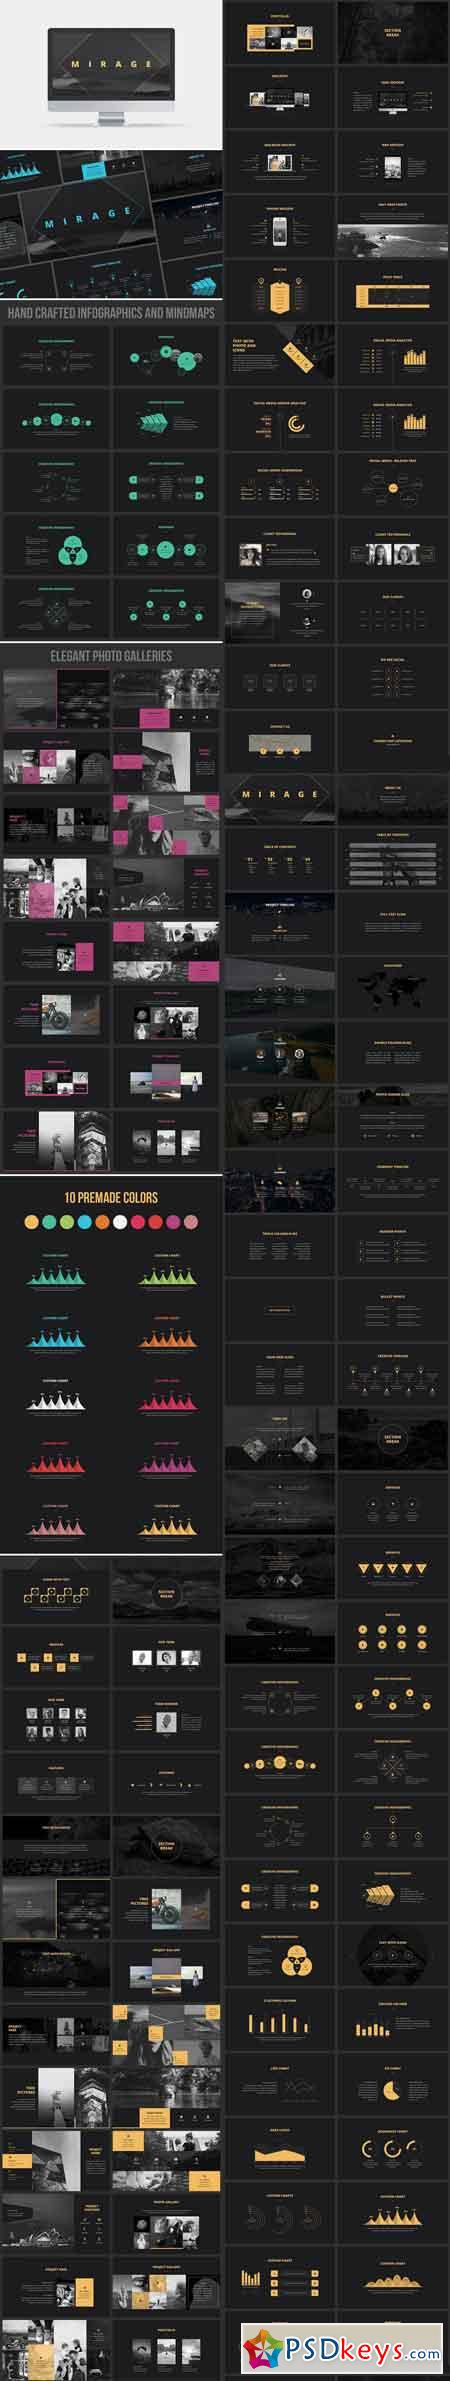 powerpoint templates torrents - mirage powerpoint template 749534 free download